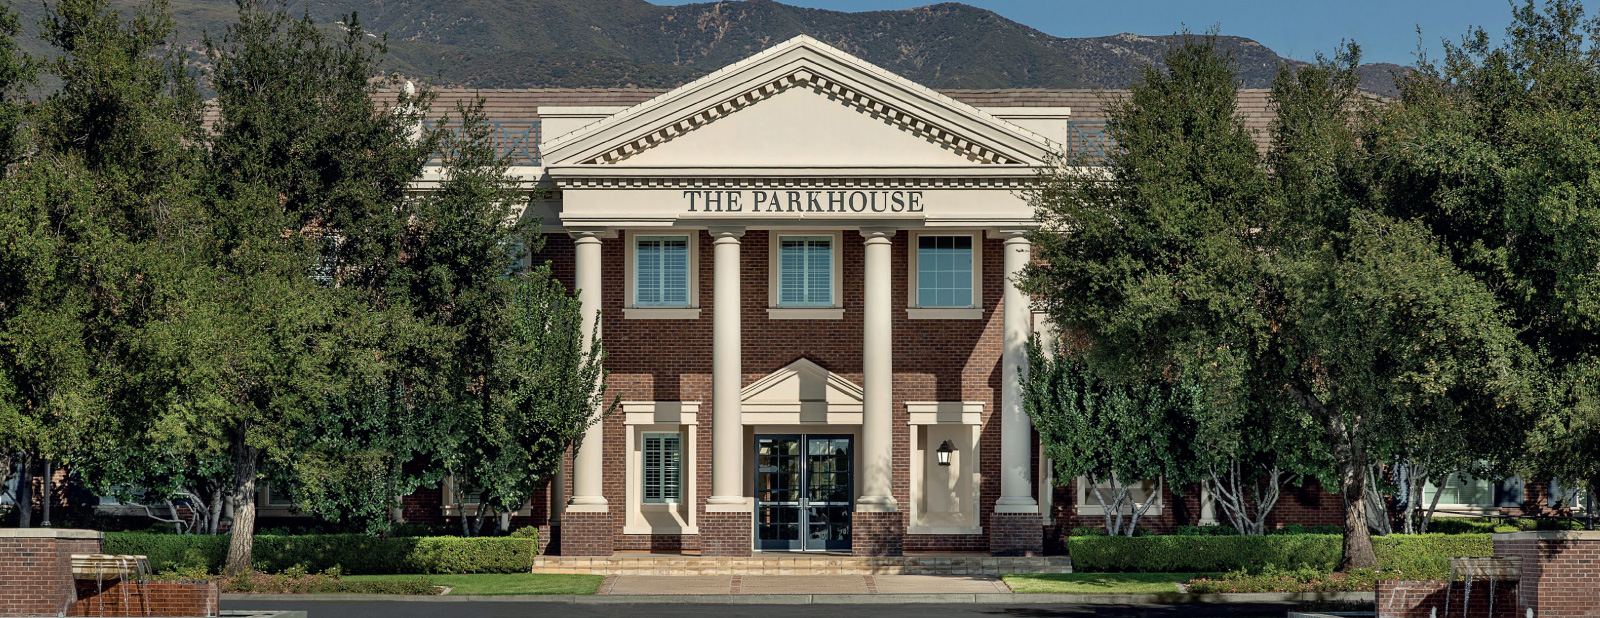 the parkhouse entrance at shady trails